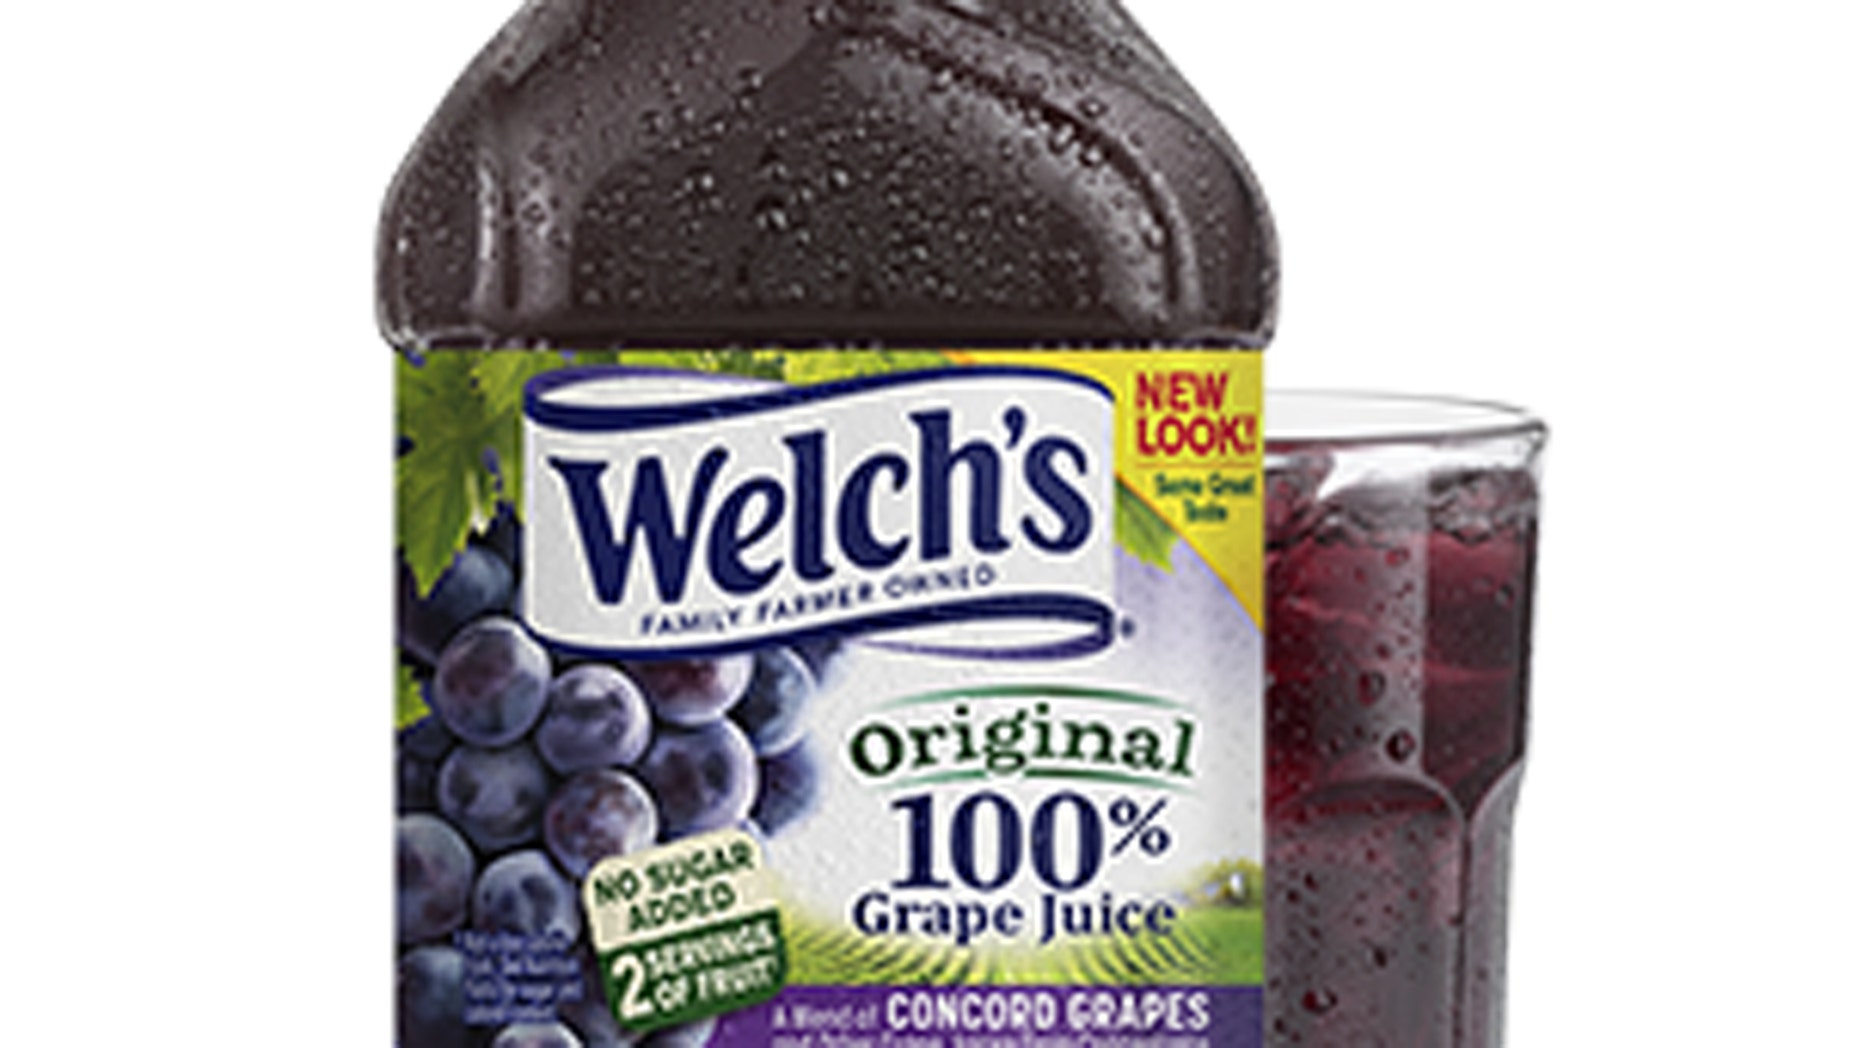 Welch's enters kosher juice market just before Passover | Fox News